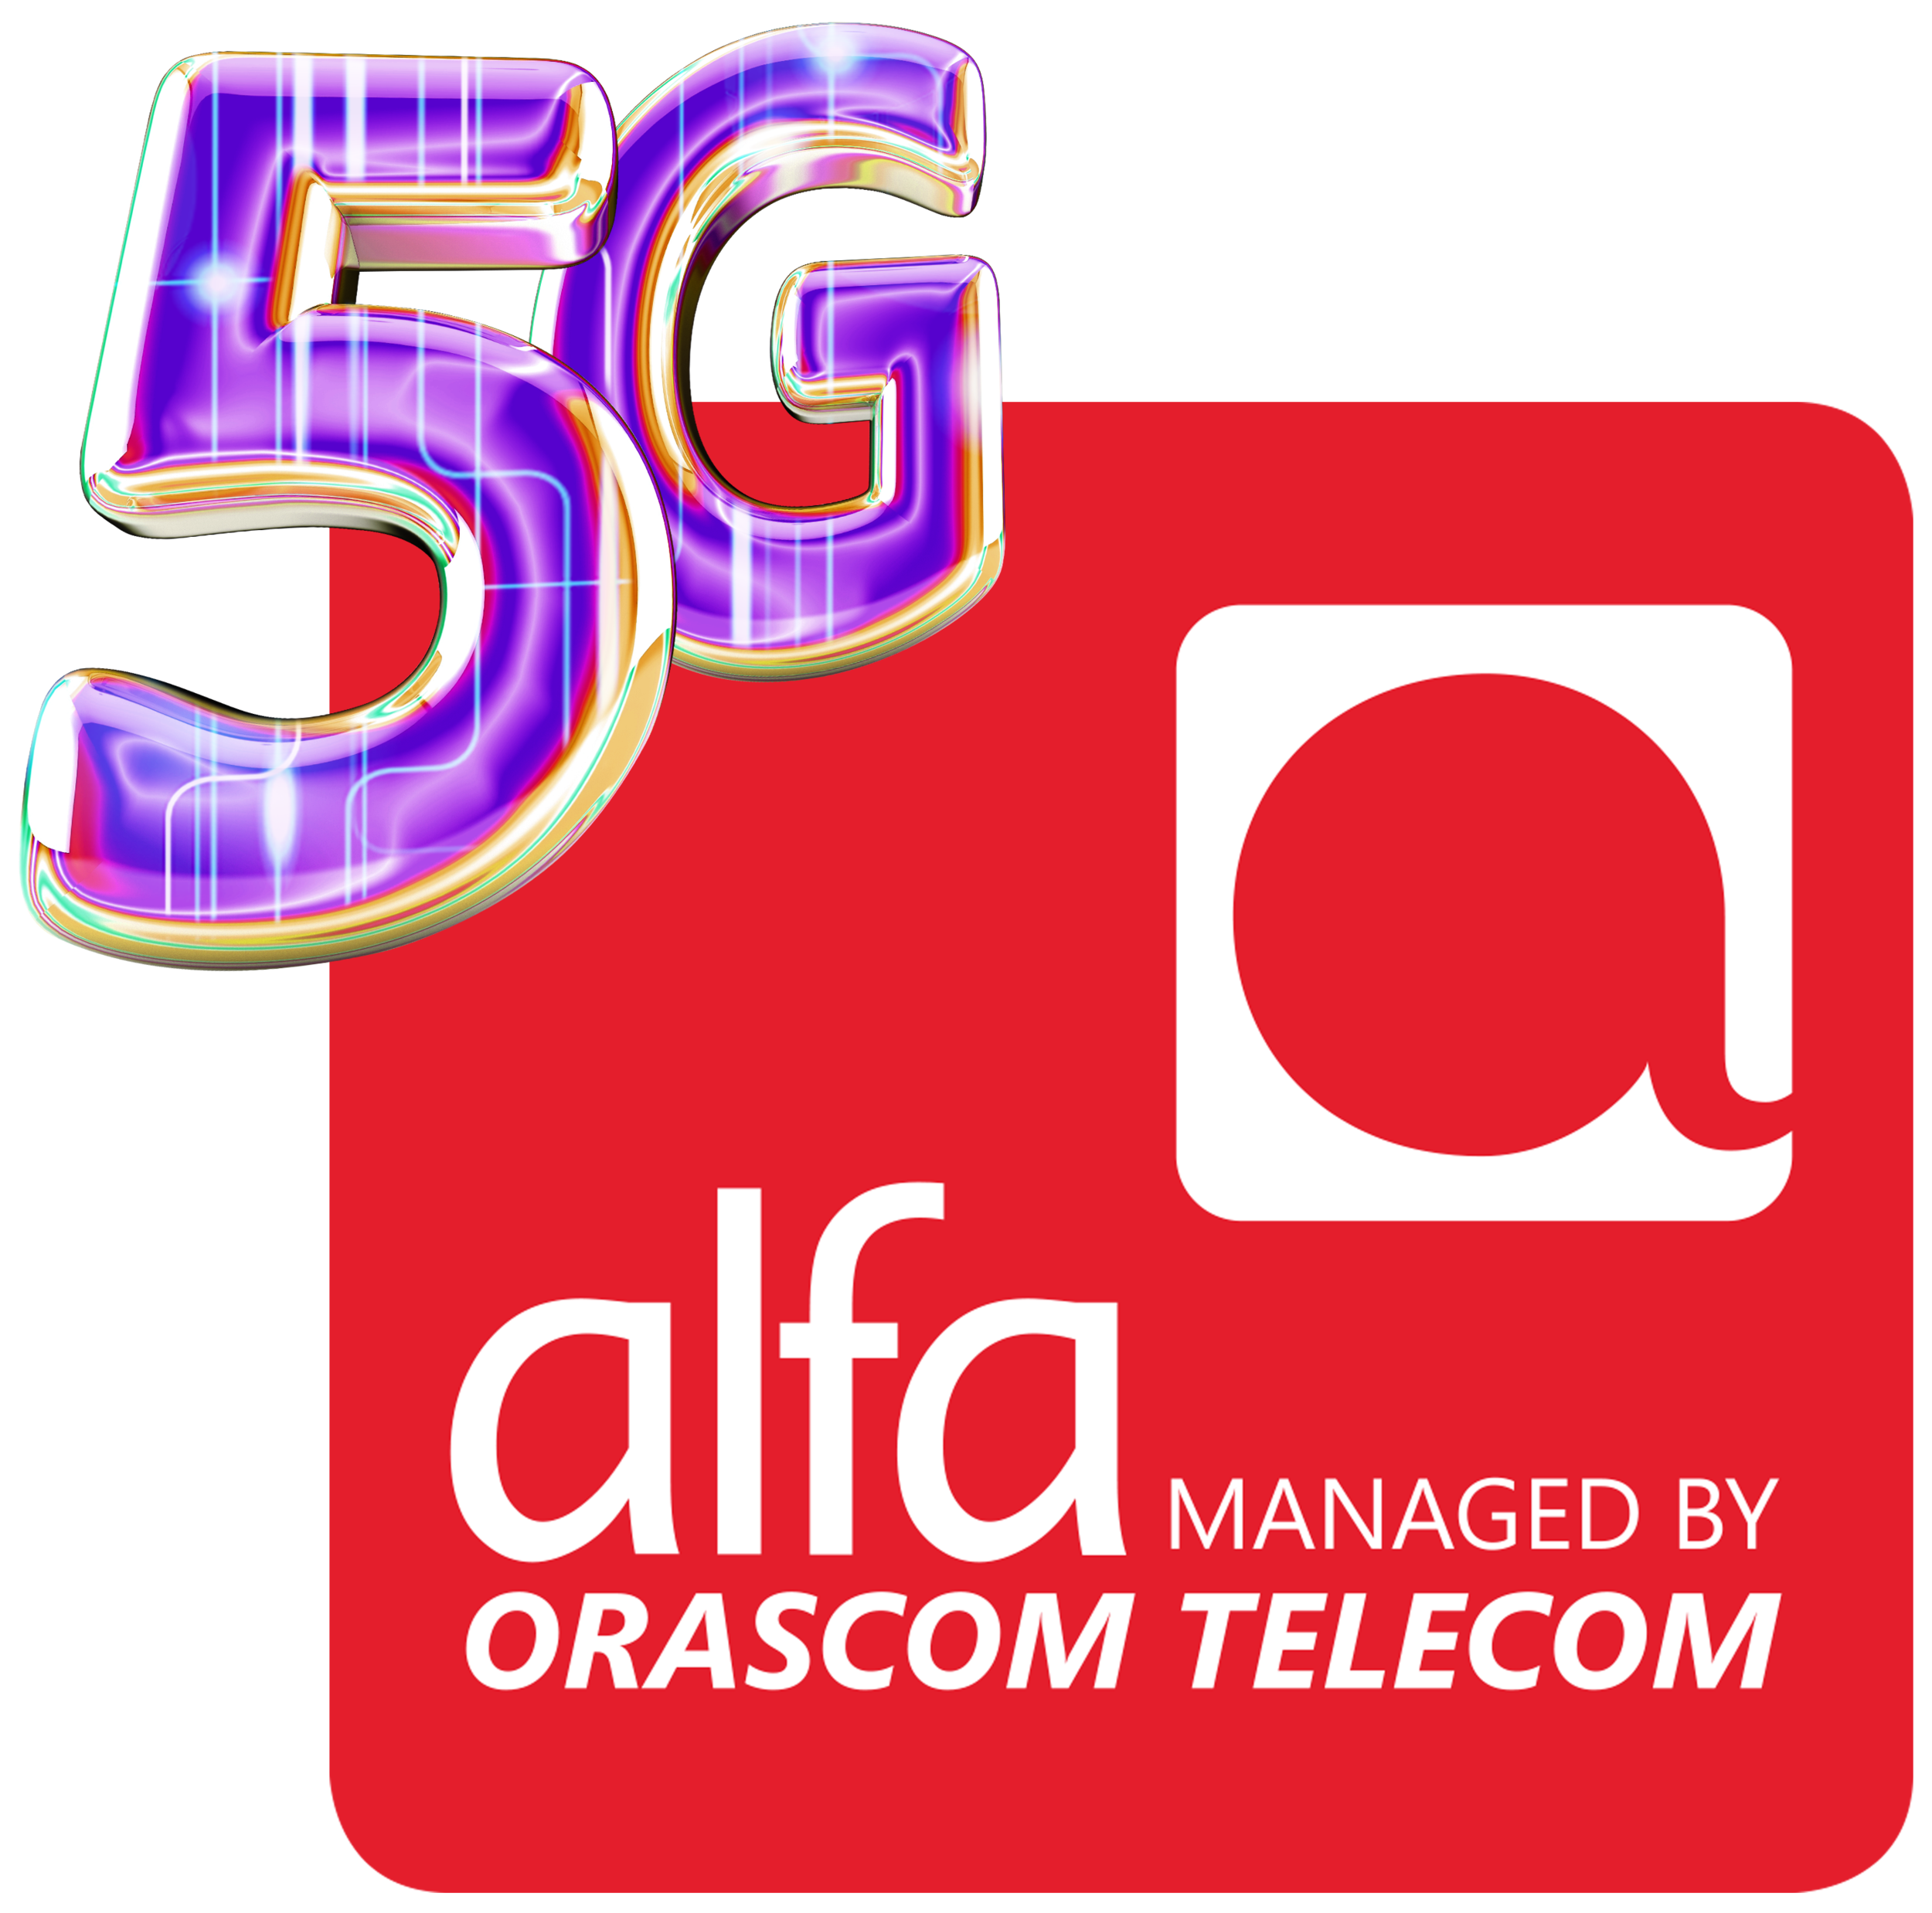 Alfa-5G-new-logo_red.png